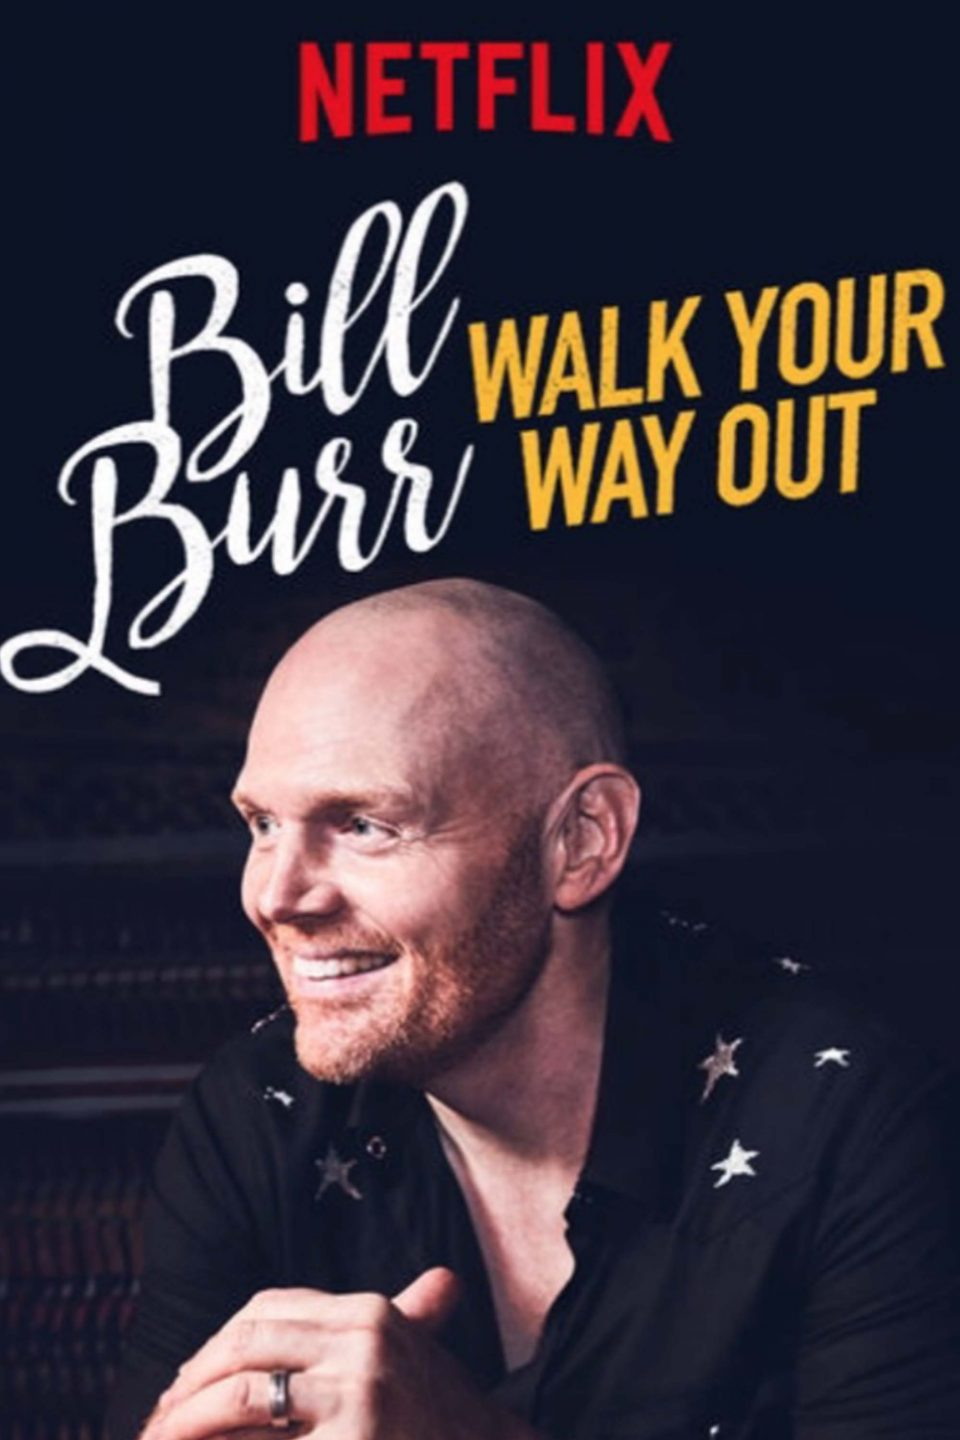 Bill Burr Walk Your Way Out Vertical